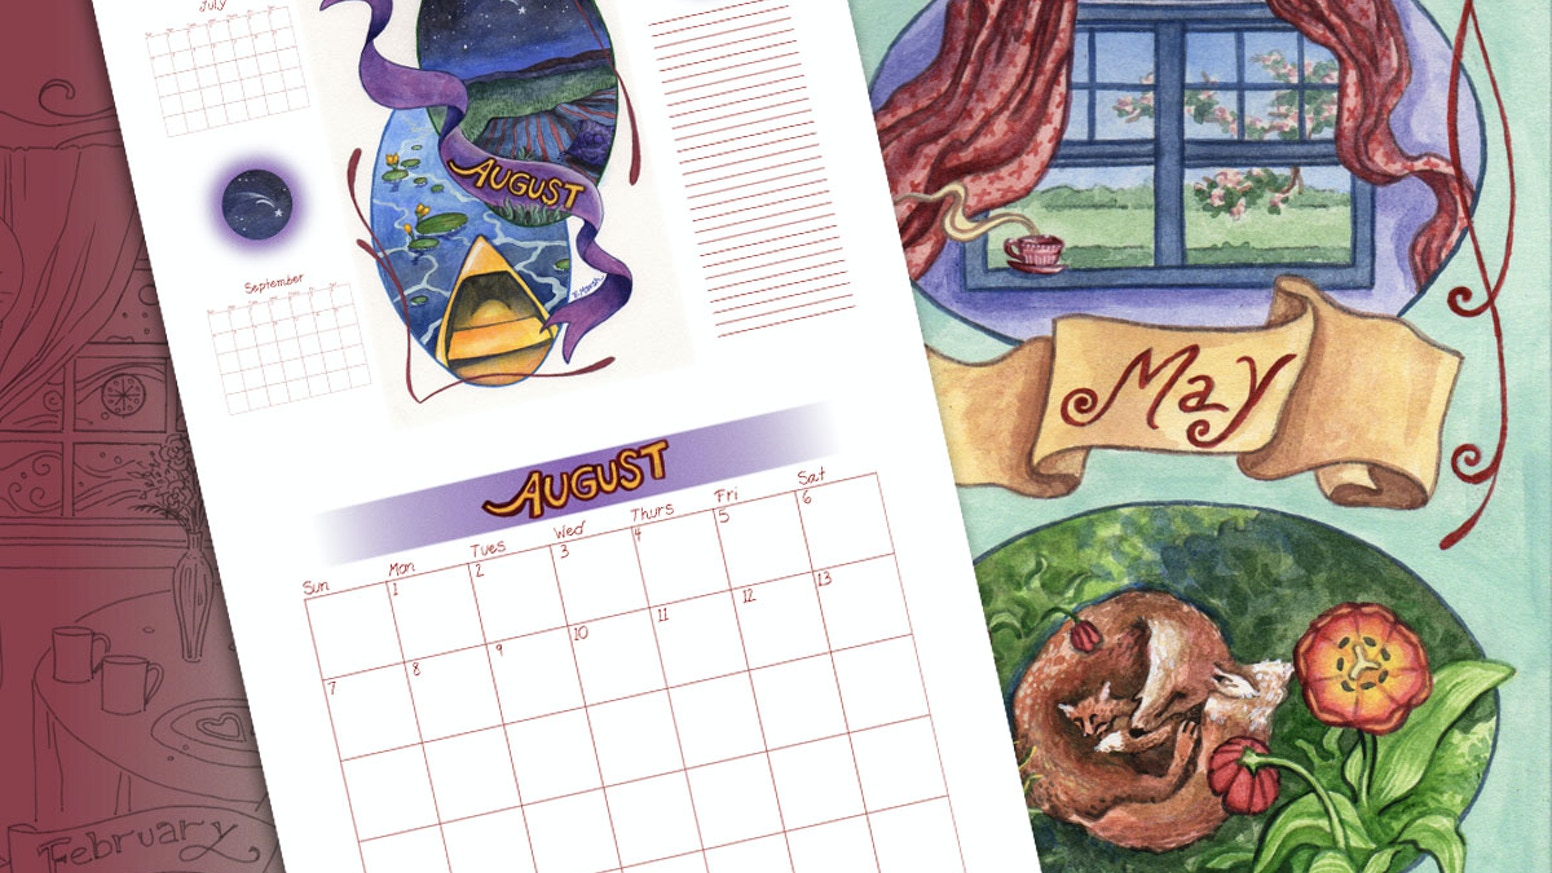 Help me turn my Art Noveau-inspired illustrations of New Hampshire's sweet seasons into a printed wall calendar!